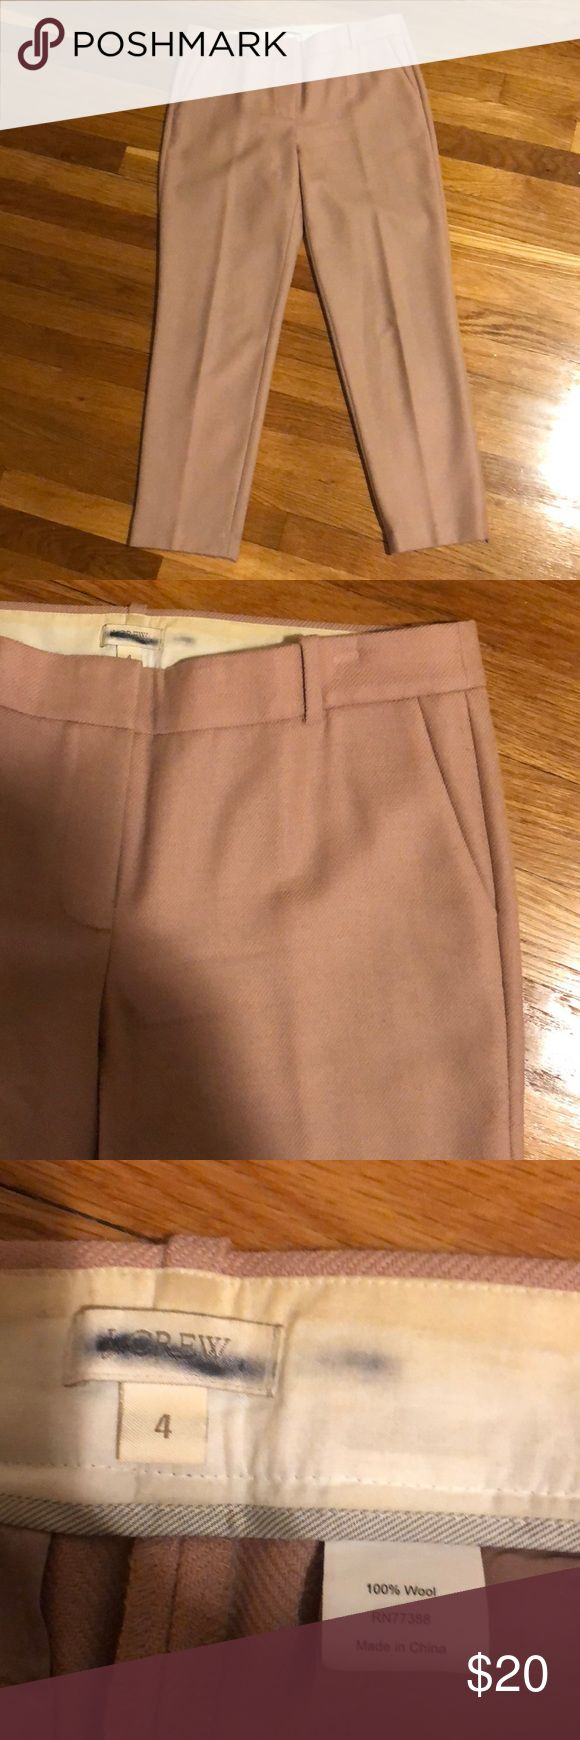 J. Crew Pink Wool Ankle pants J. Crew pink unlined wool pants. From a sample sale so the label is struck through, but pants are great condition! Cropped at about ankle length. Unlined 100% wool pants. Amazing statement pants for work at a super steal! J. Crew Pants Trousers